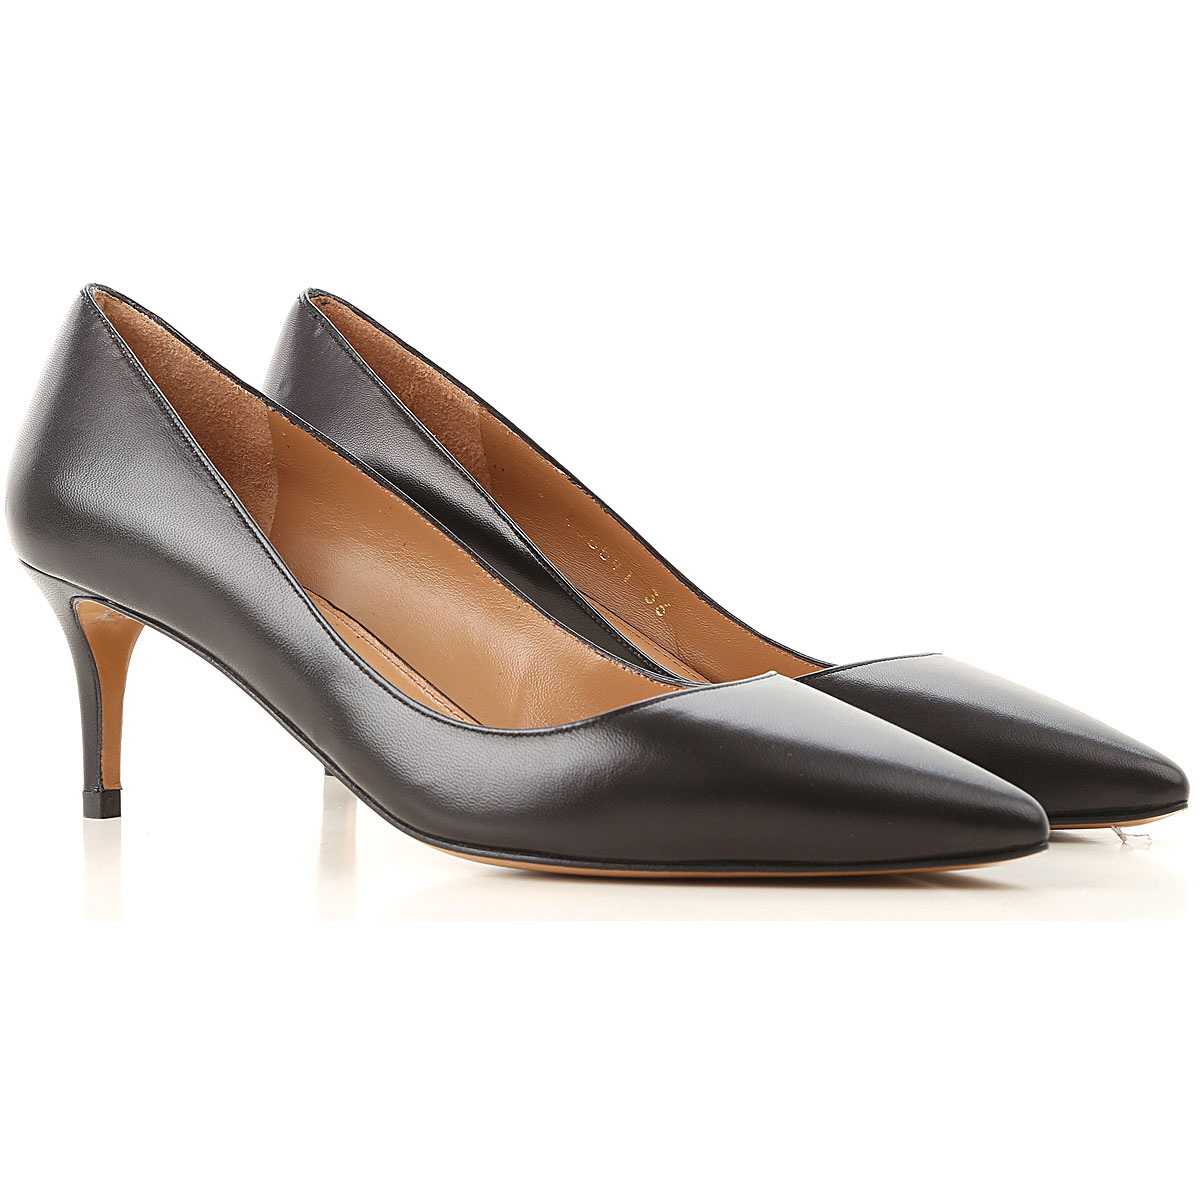 Image of Pura Lopez Pumps & High Heels for Women, Black, Leather, 2017, 10 6 7 8 9